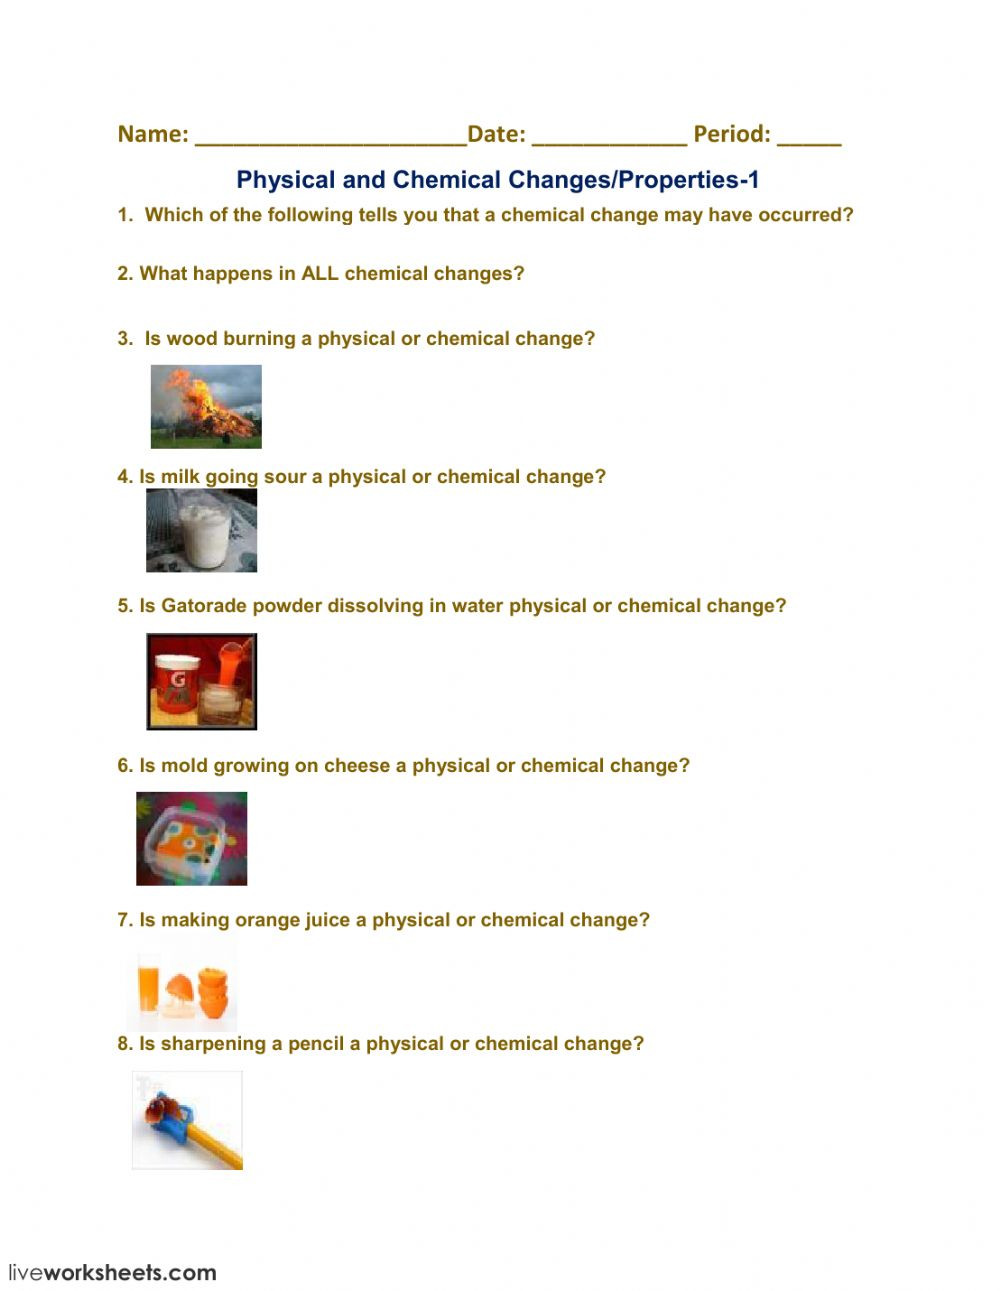 Physical and Chemical Properties Worksheet Physical and Chemical Changes Properties 1 Interactive